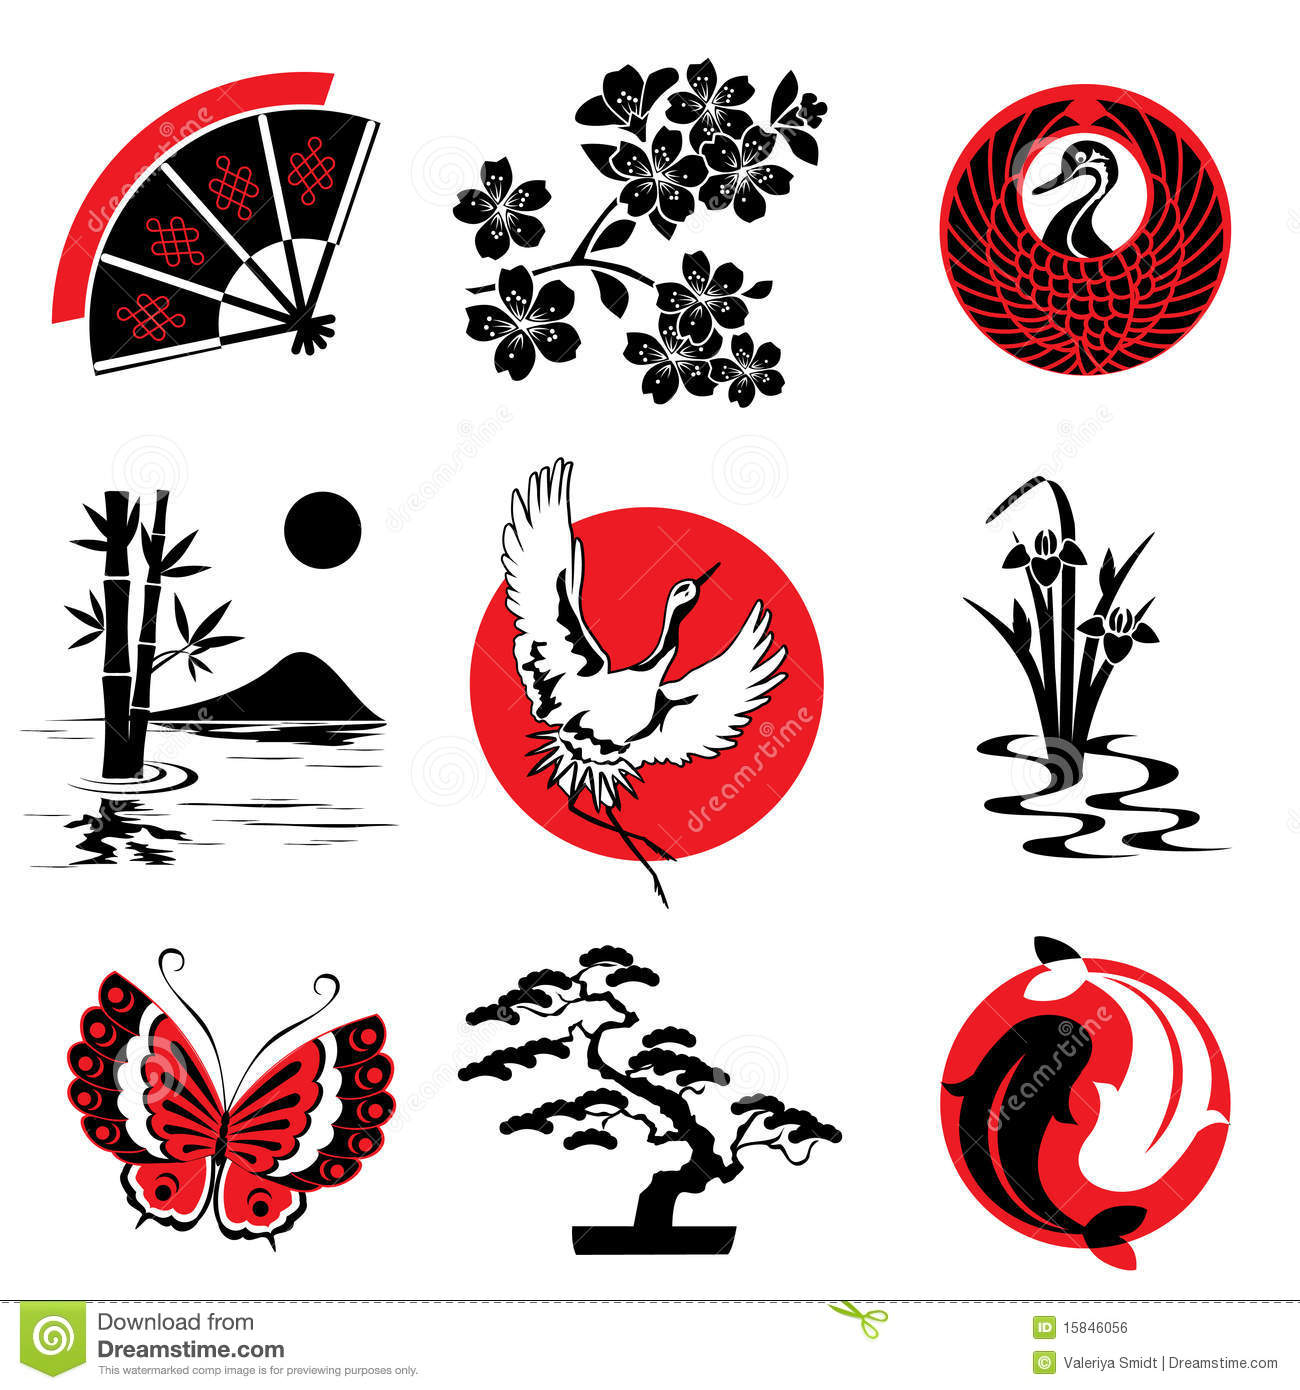 japanese design royalty free stock image - image: 15846056